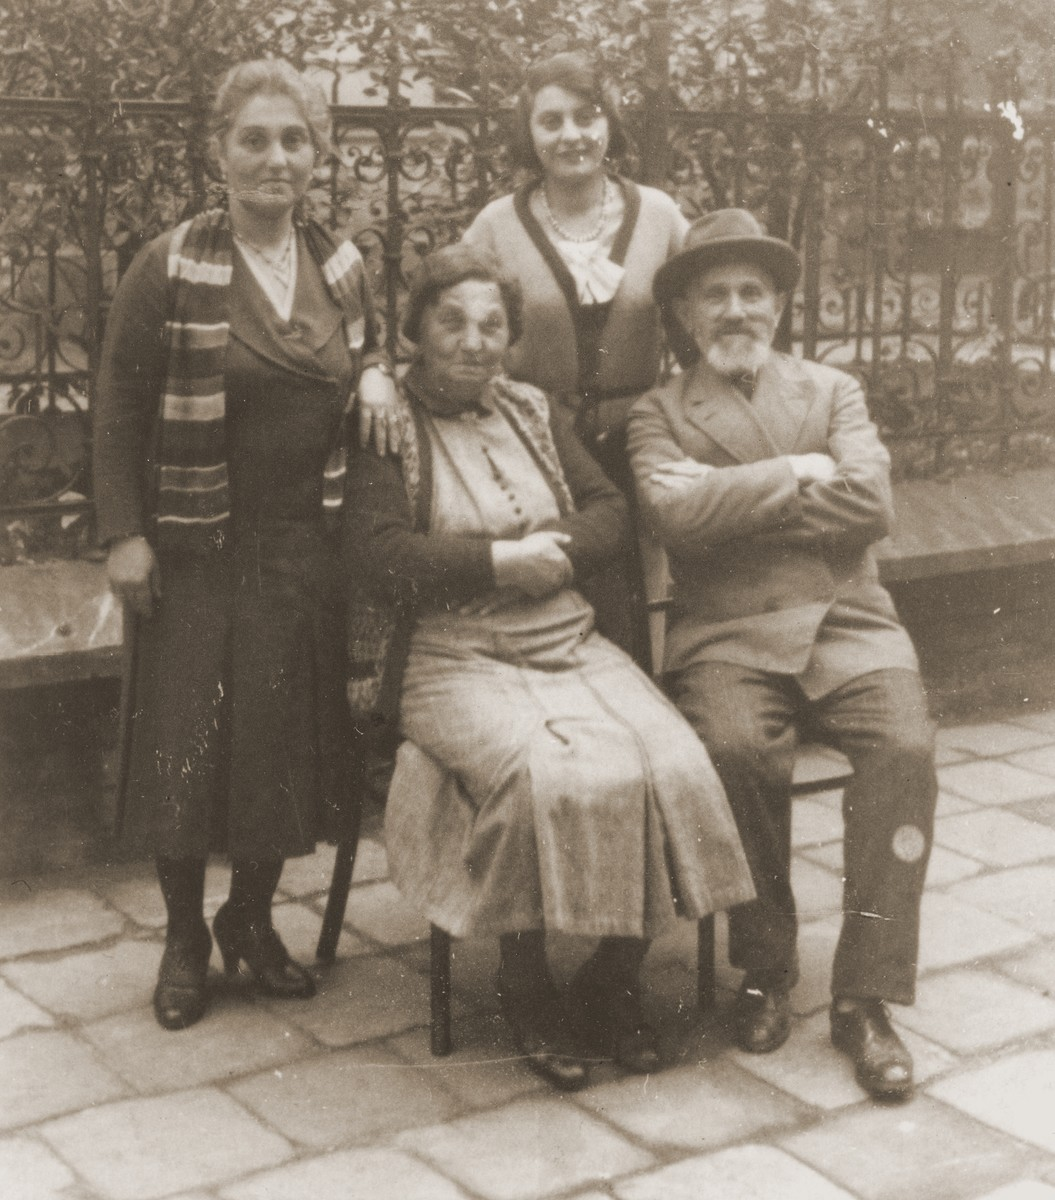 Members of the Fischman family in Czestochowa.  Seated from left to right are Chana Sara Fischmann and Isaak Fischmann; standing from left to right are, Karola Toper and Chaya Fischmann.